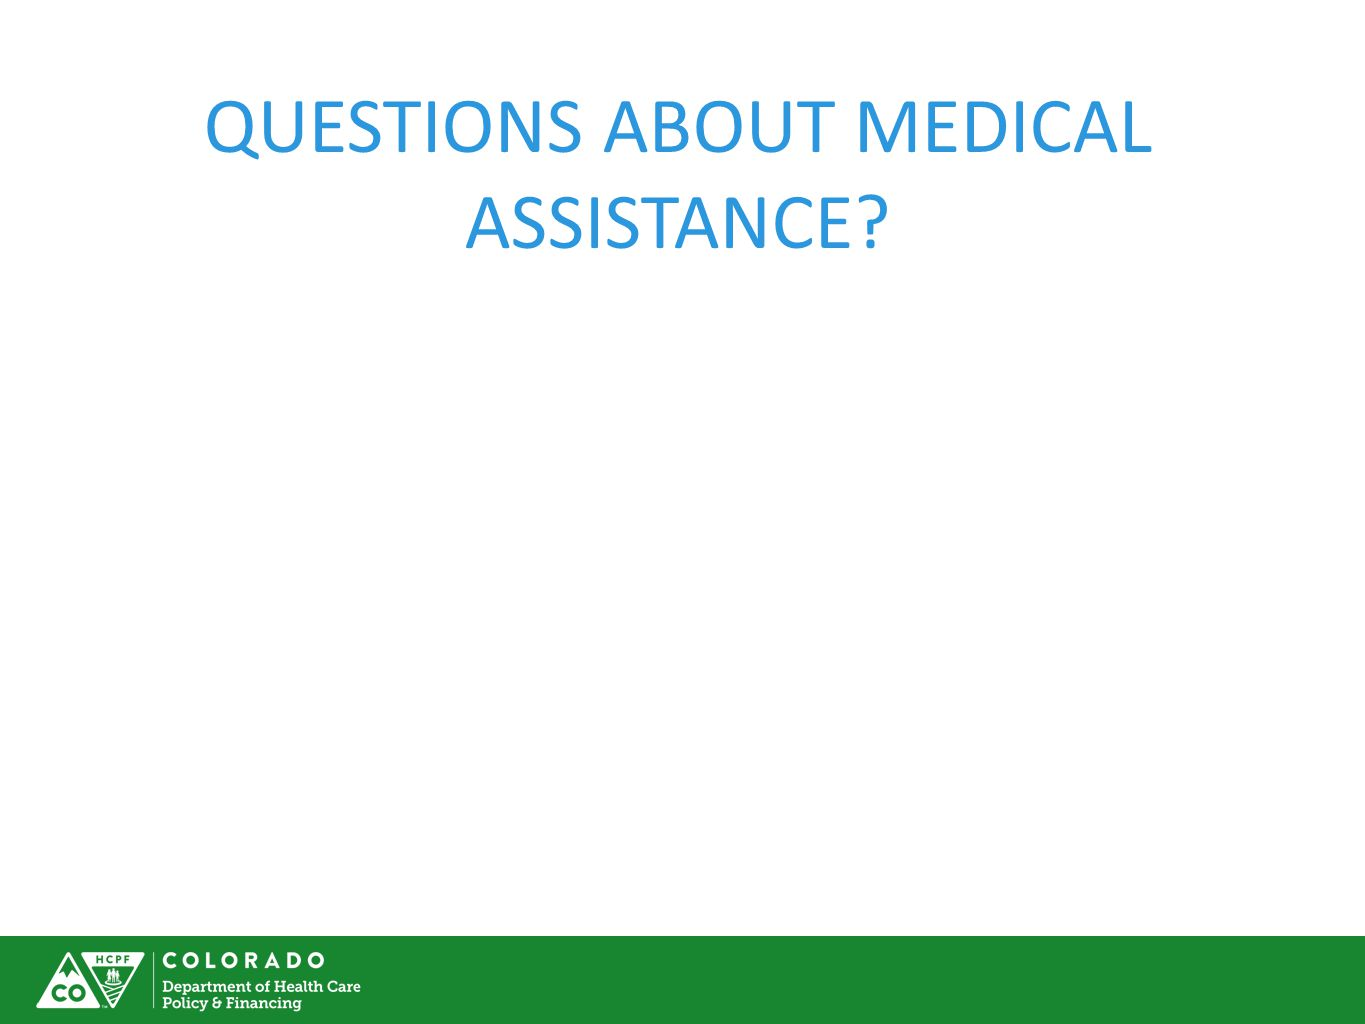 QUESTIONS ABOUT MEDICAL ASSISTANCE?